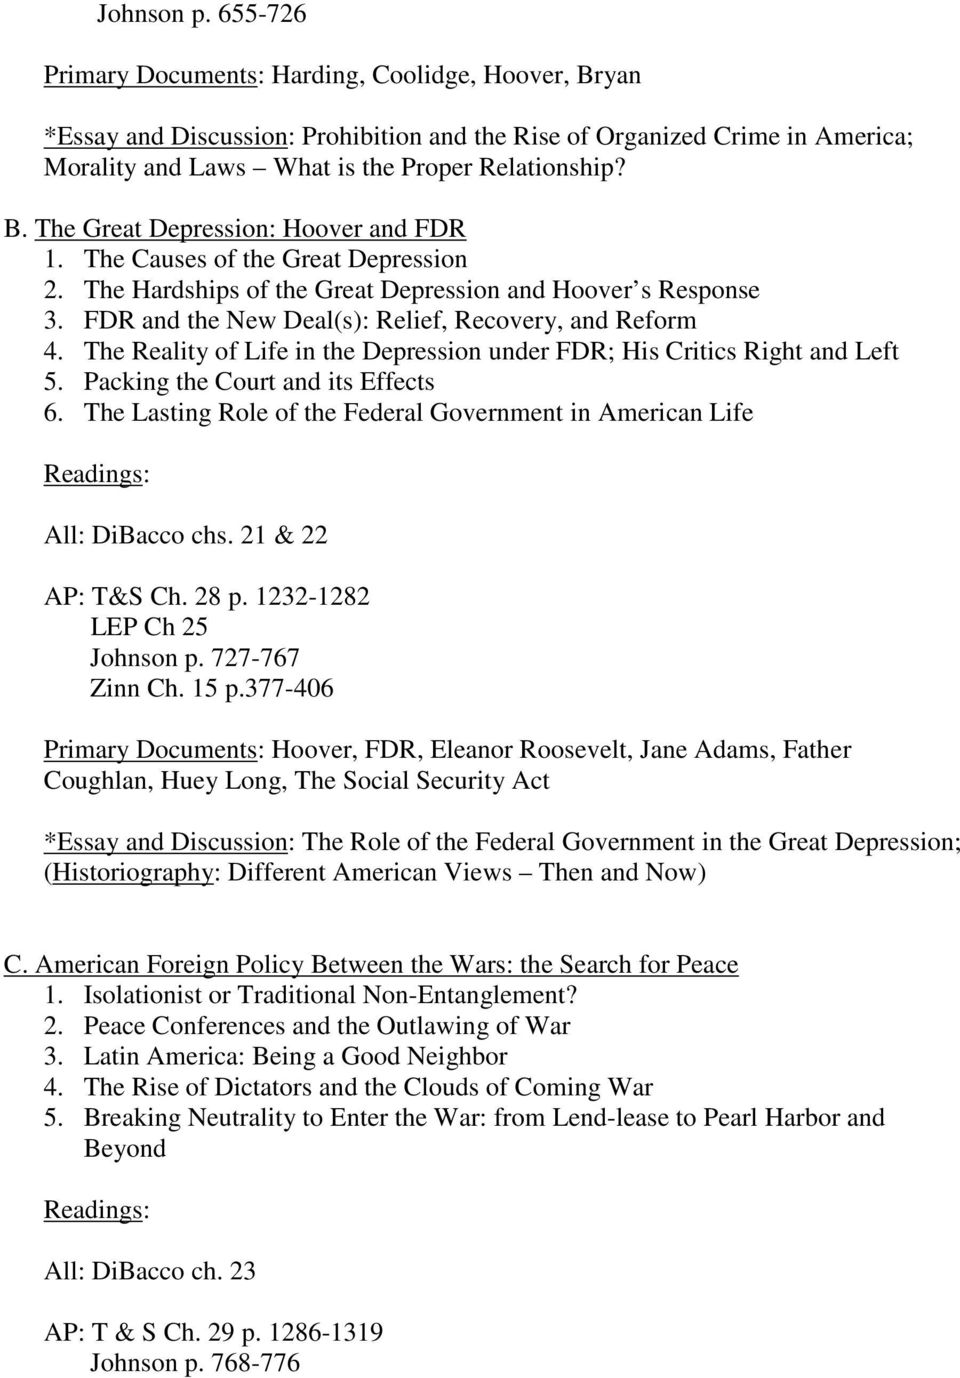 US History Syllabus: Regular, Honors, and Advanced Placement